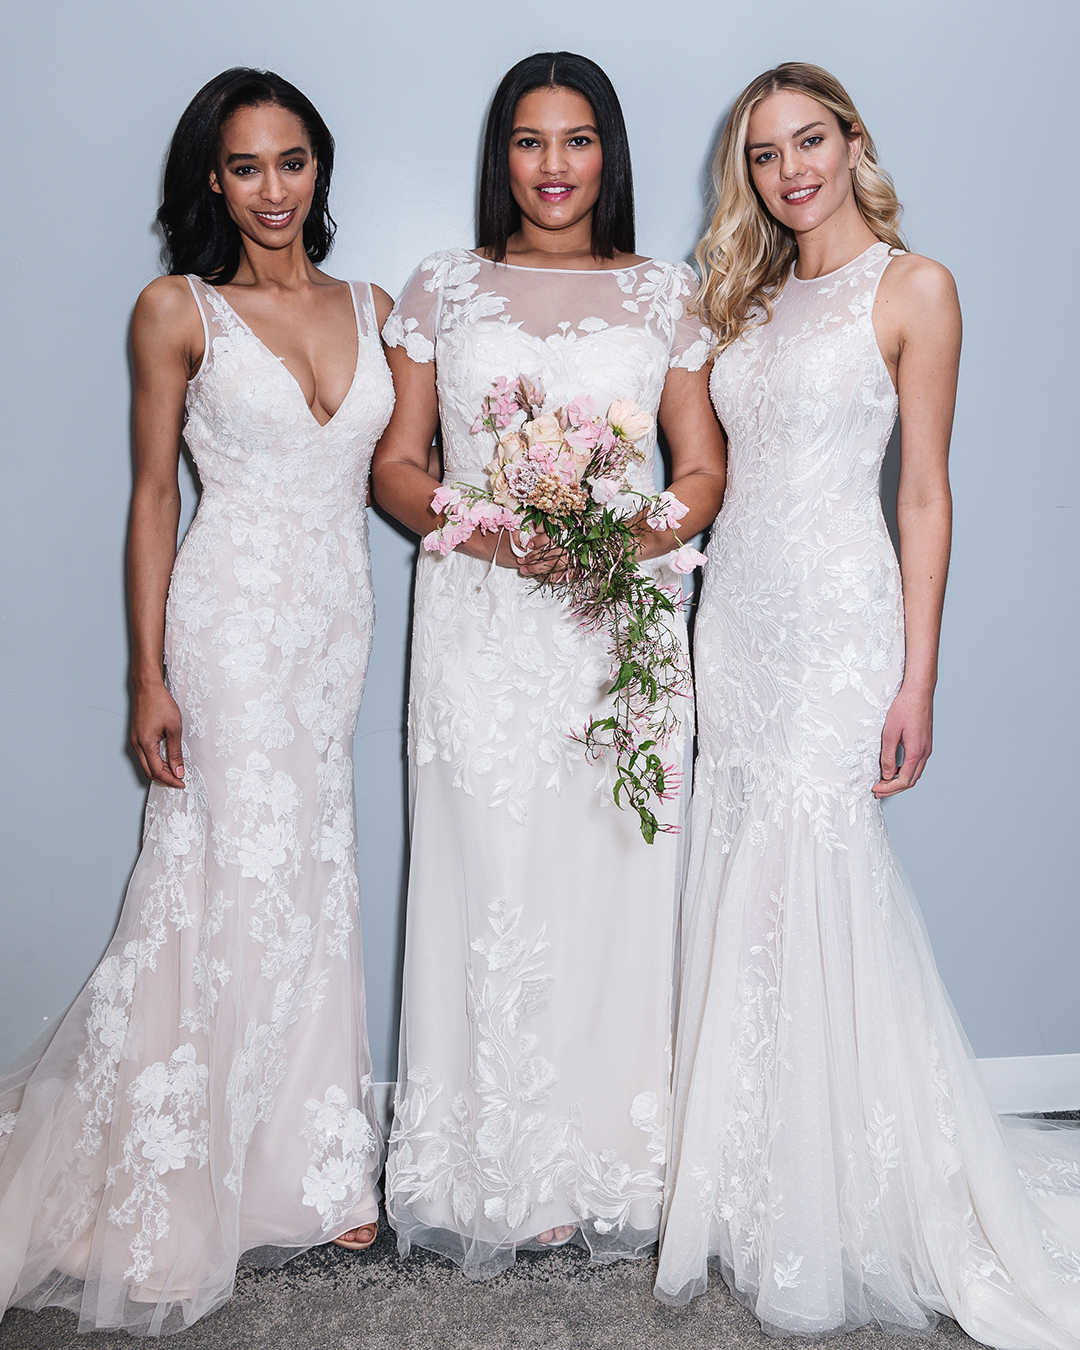 Three women in bridal store in lace wedding dresses